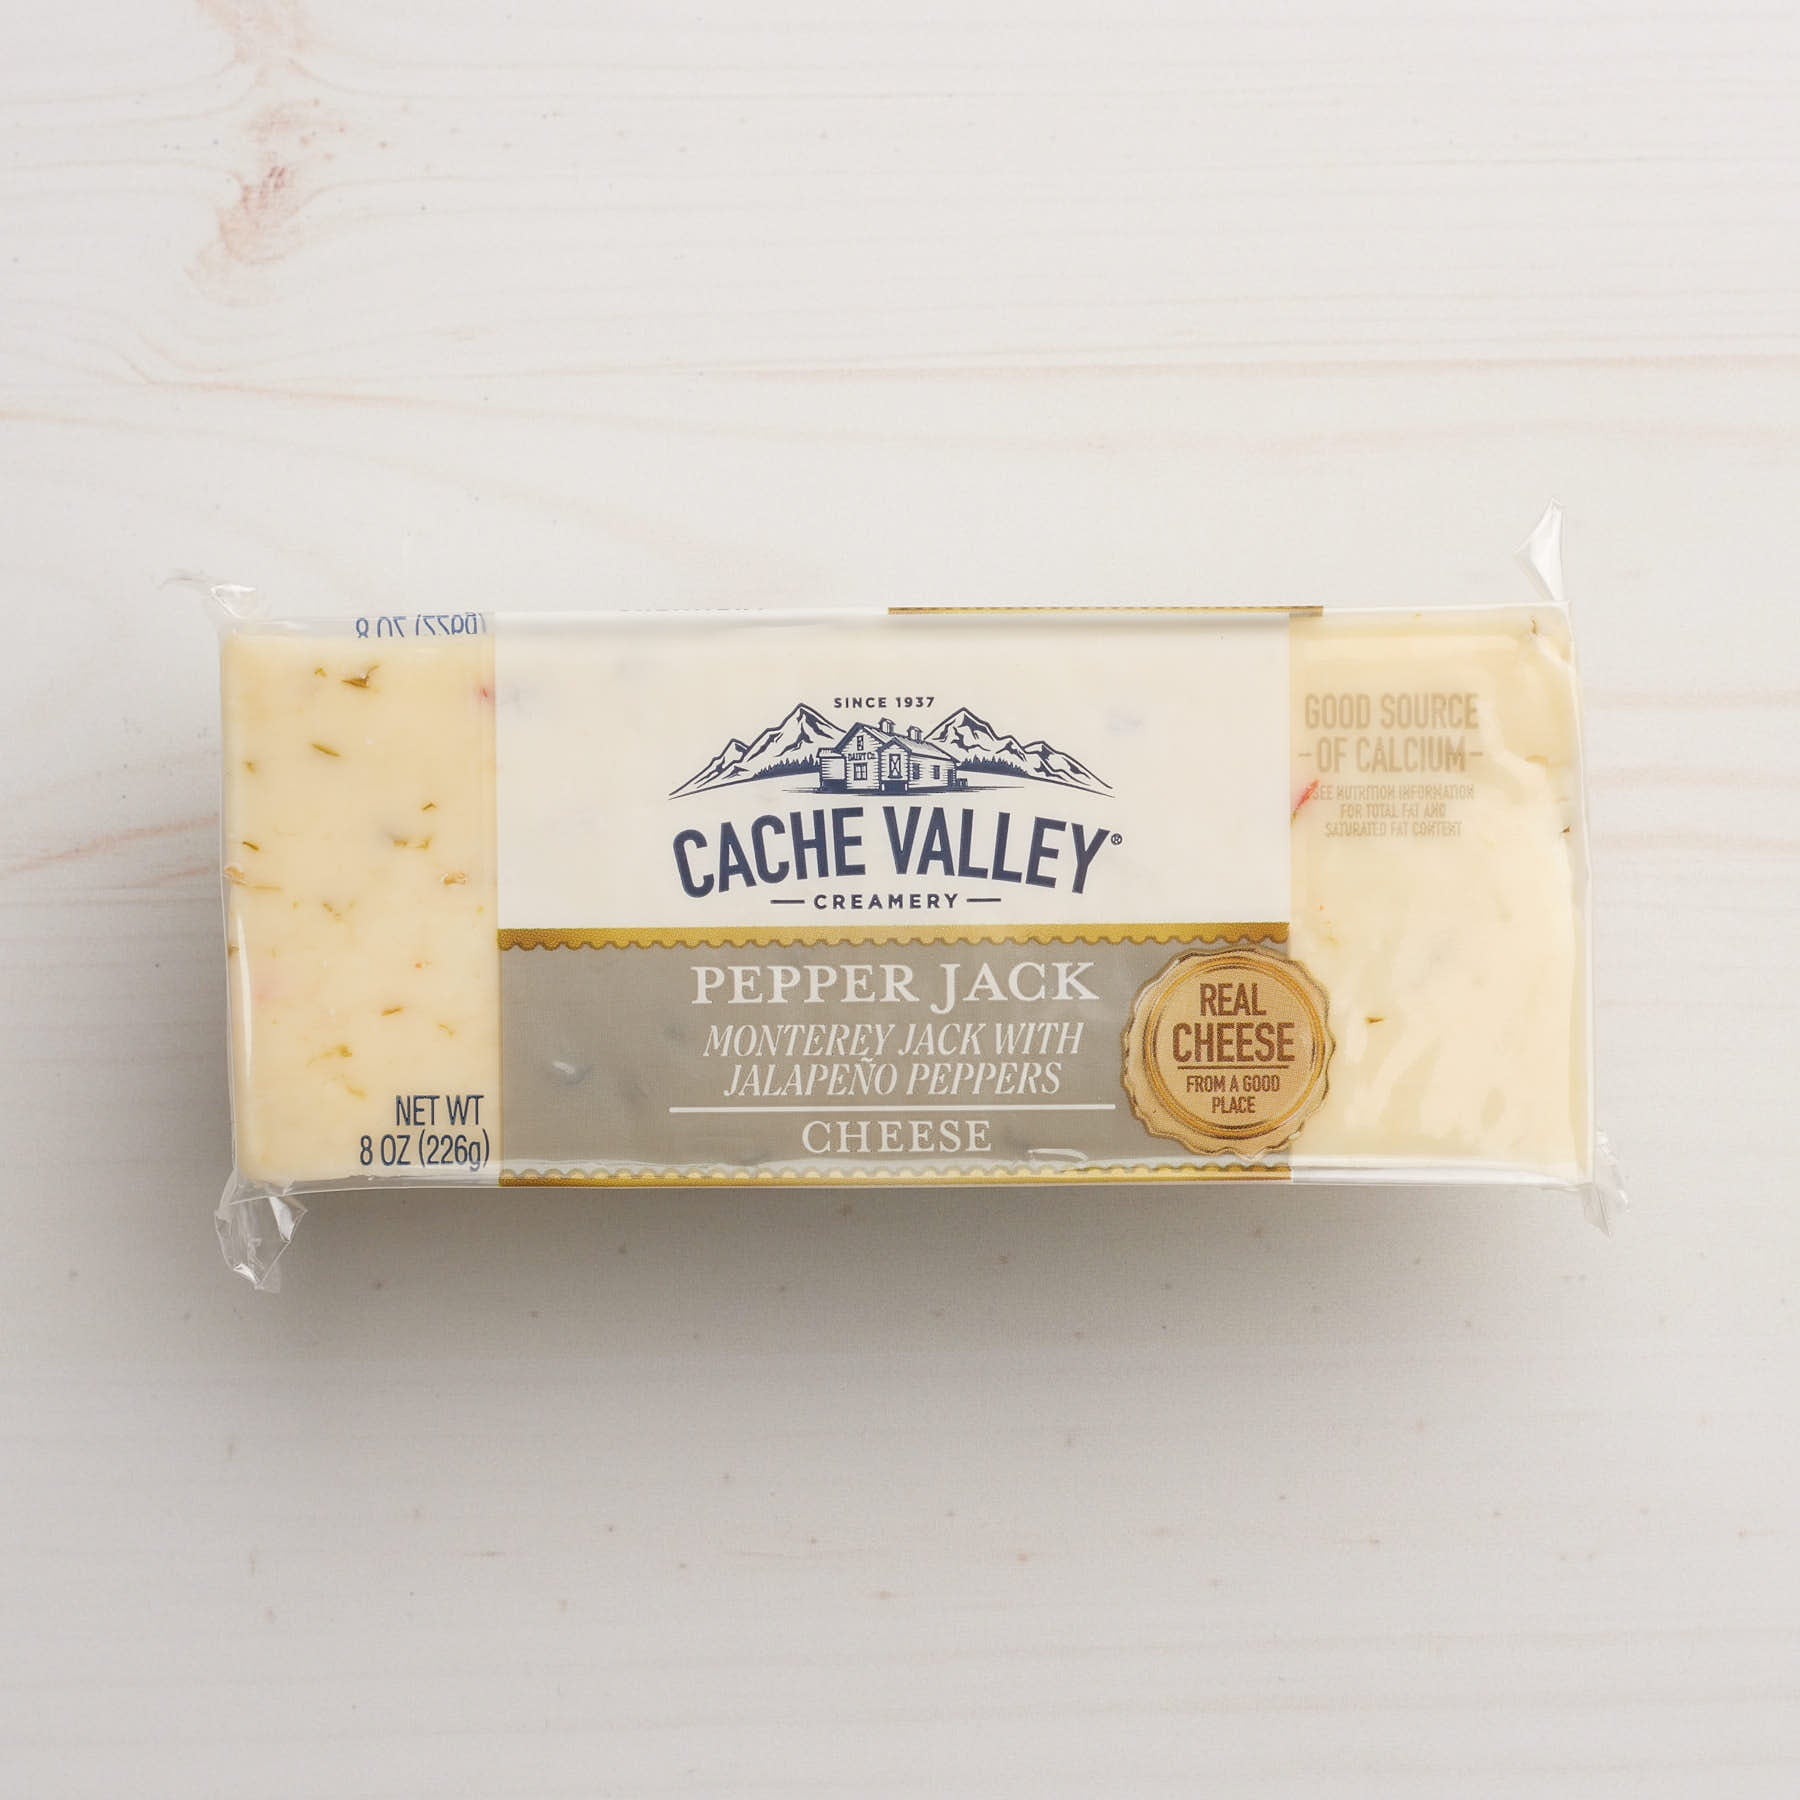 Image of Cache Valley Creamery Pepper Jack Cheese